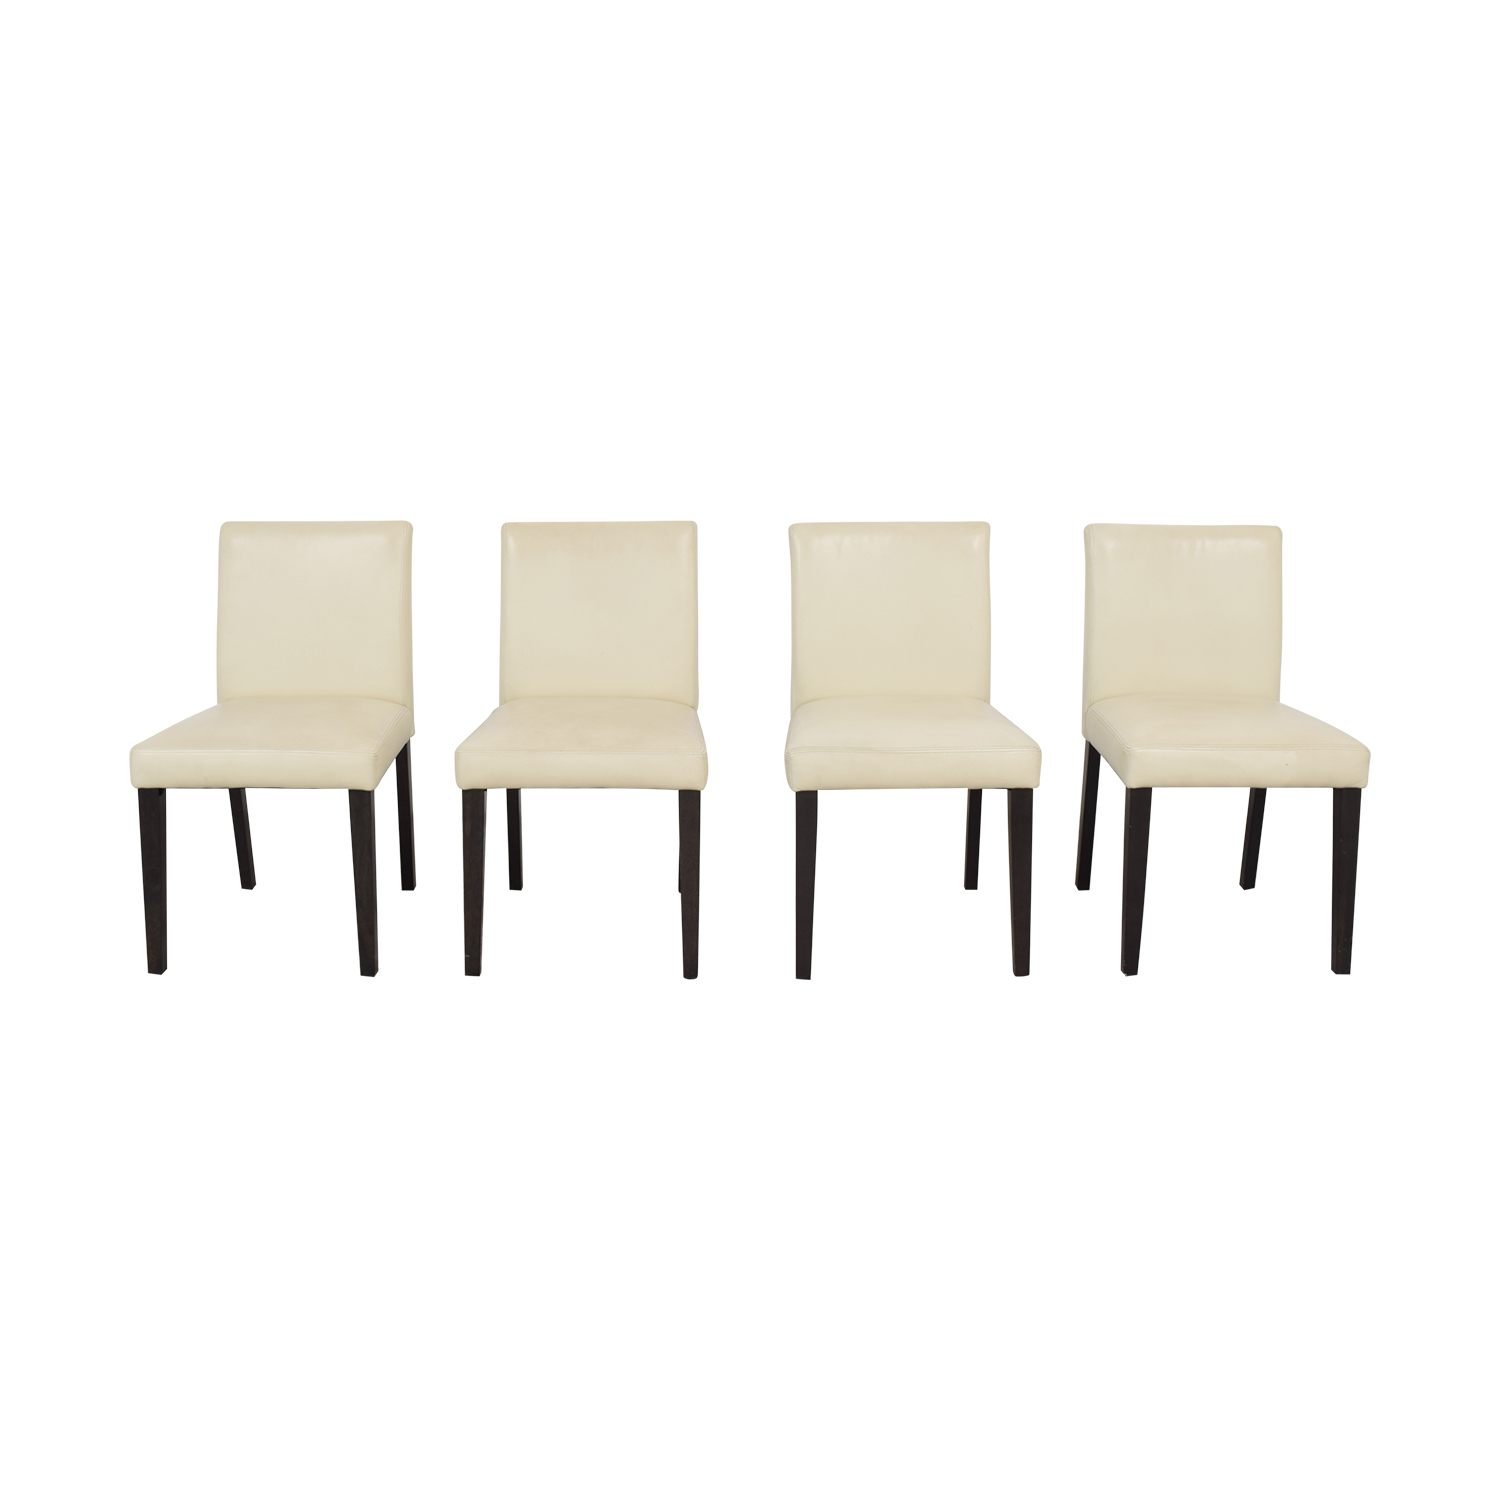 West Elm West Elm Parson Chairs ct